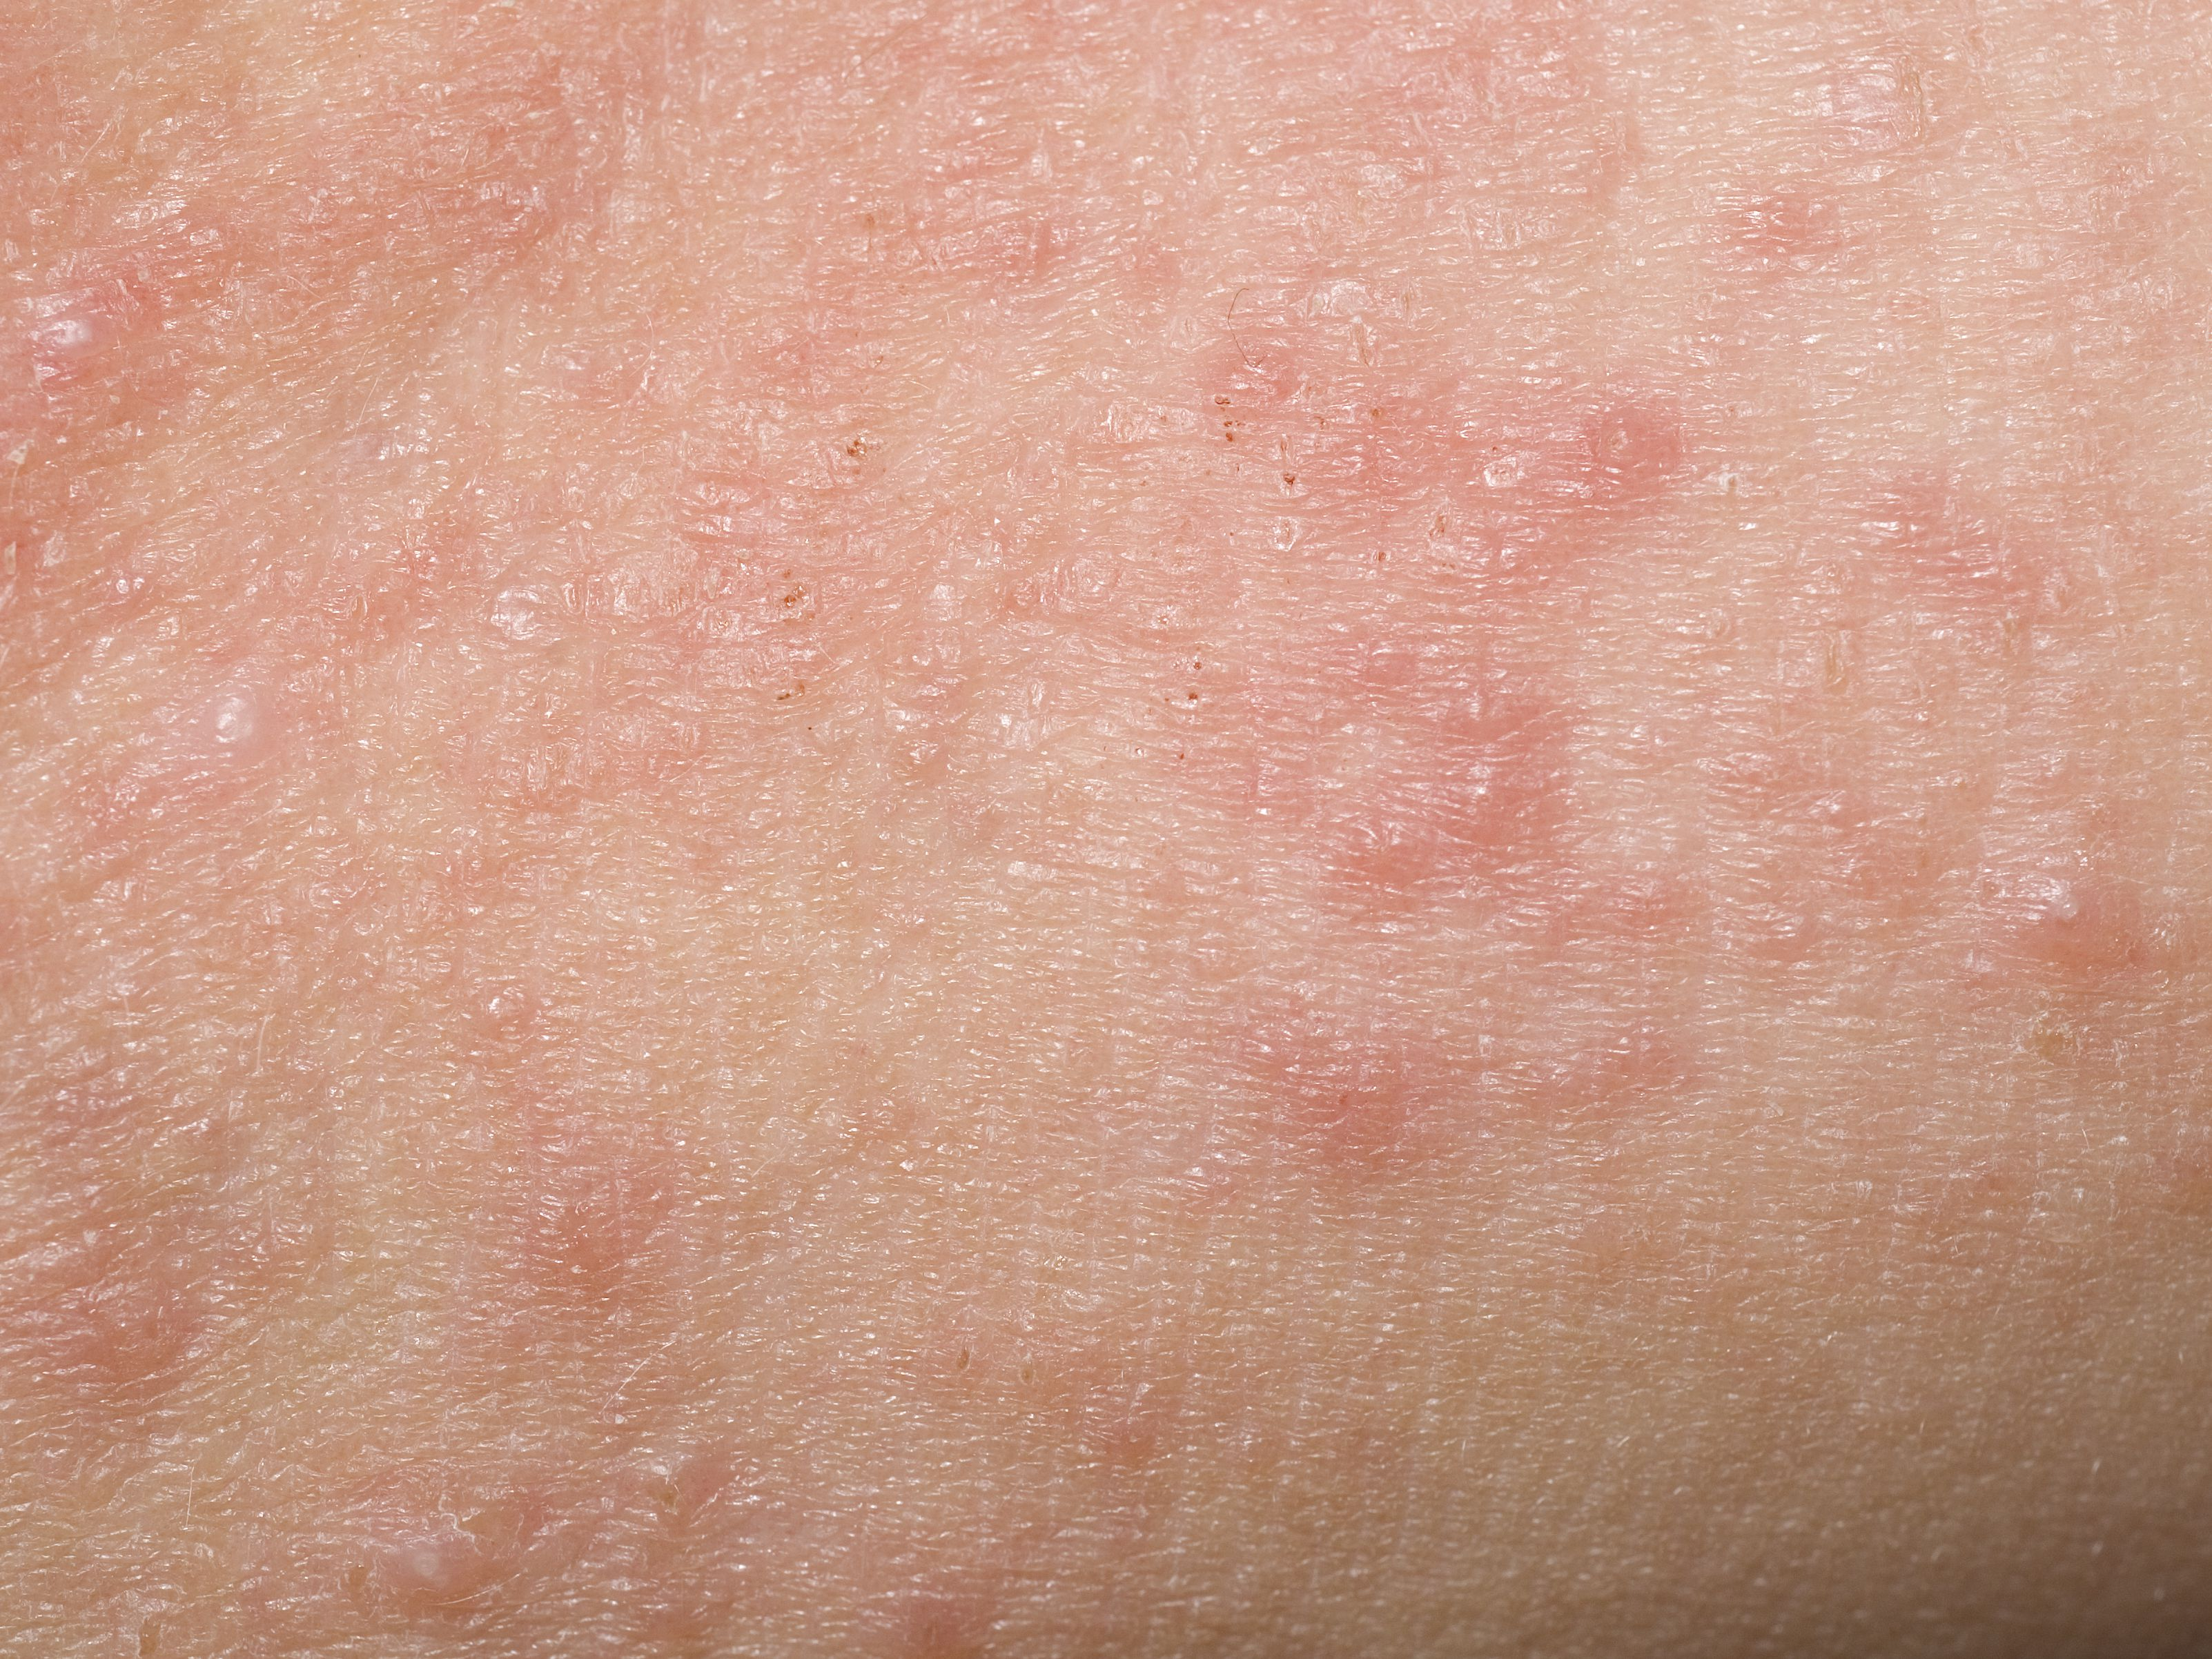 Contact Dermatitis: Symptoms, Causes, Diagnosis, Treatment